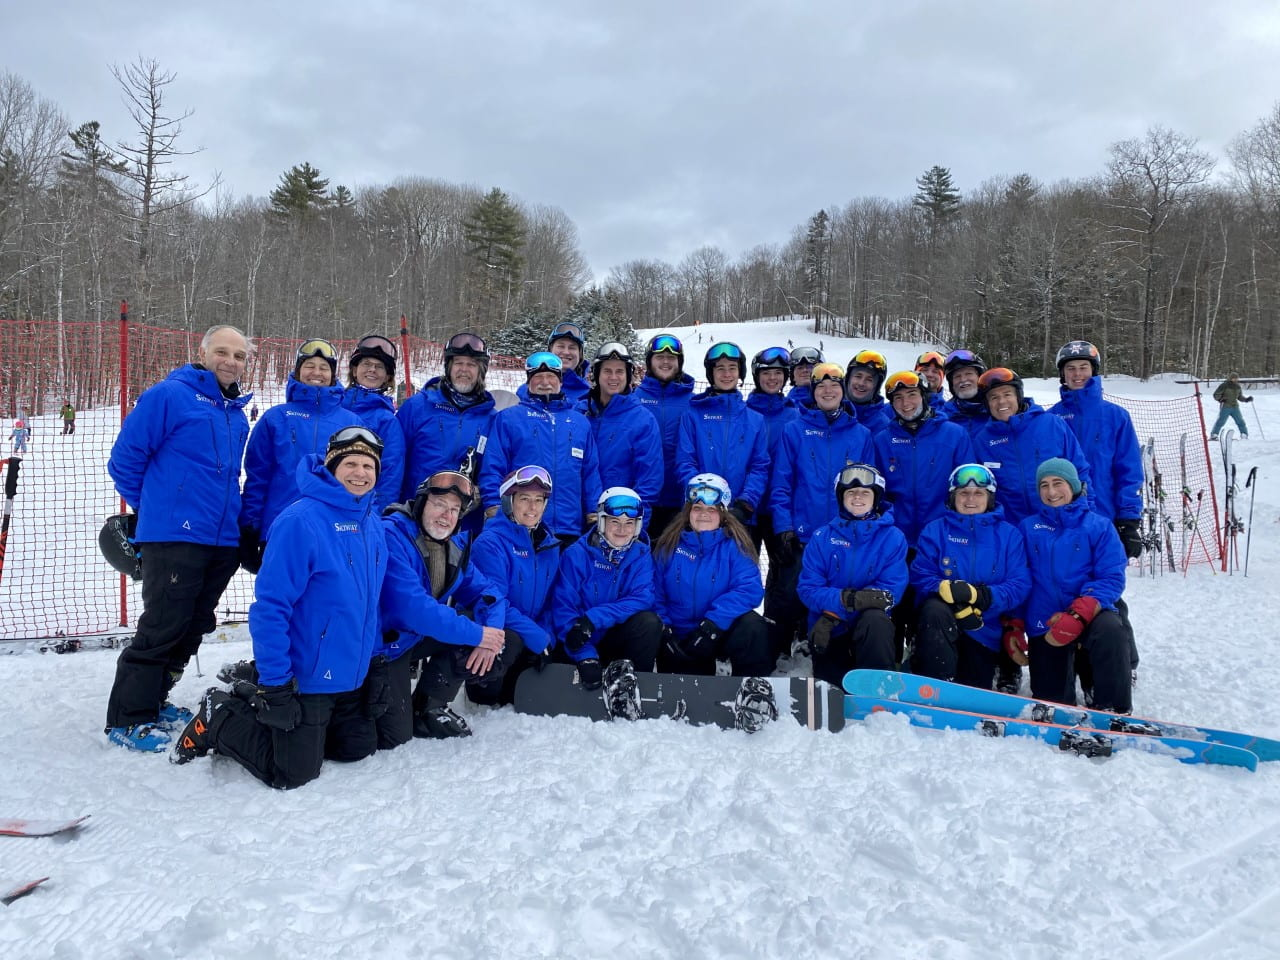 Snowsports School Team